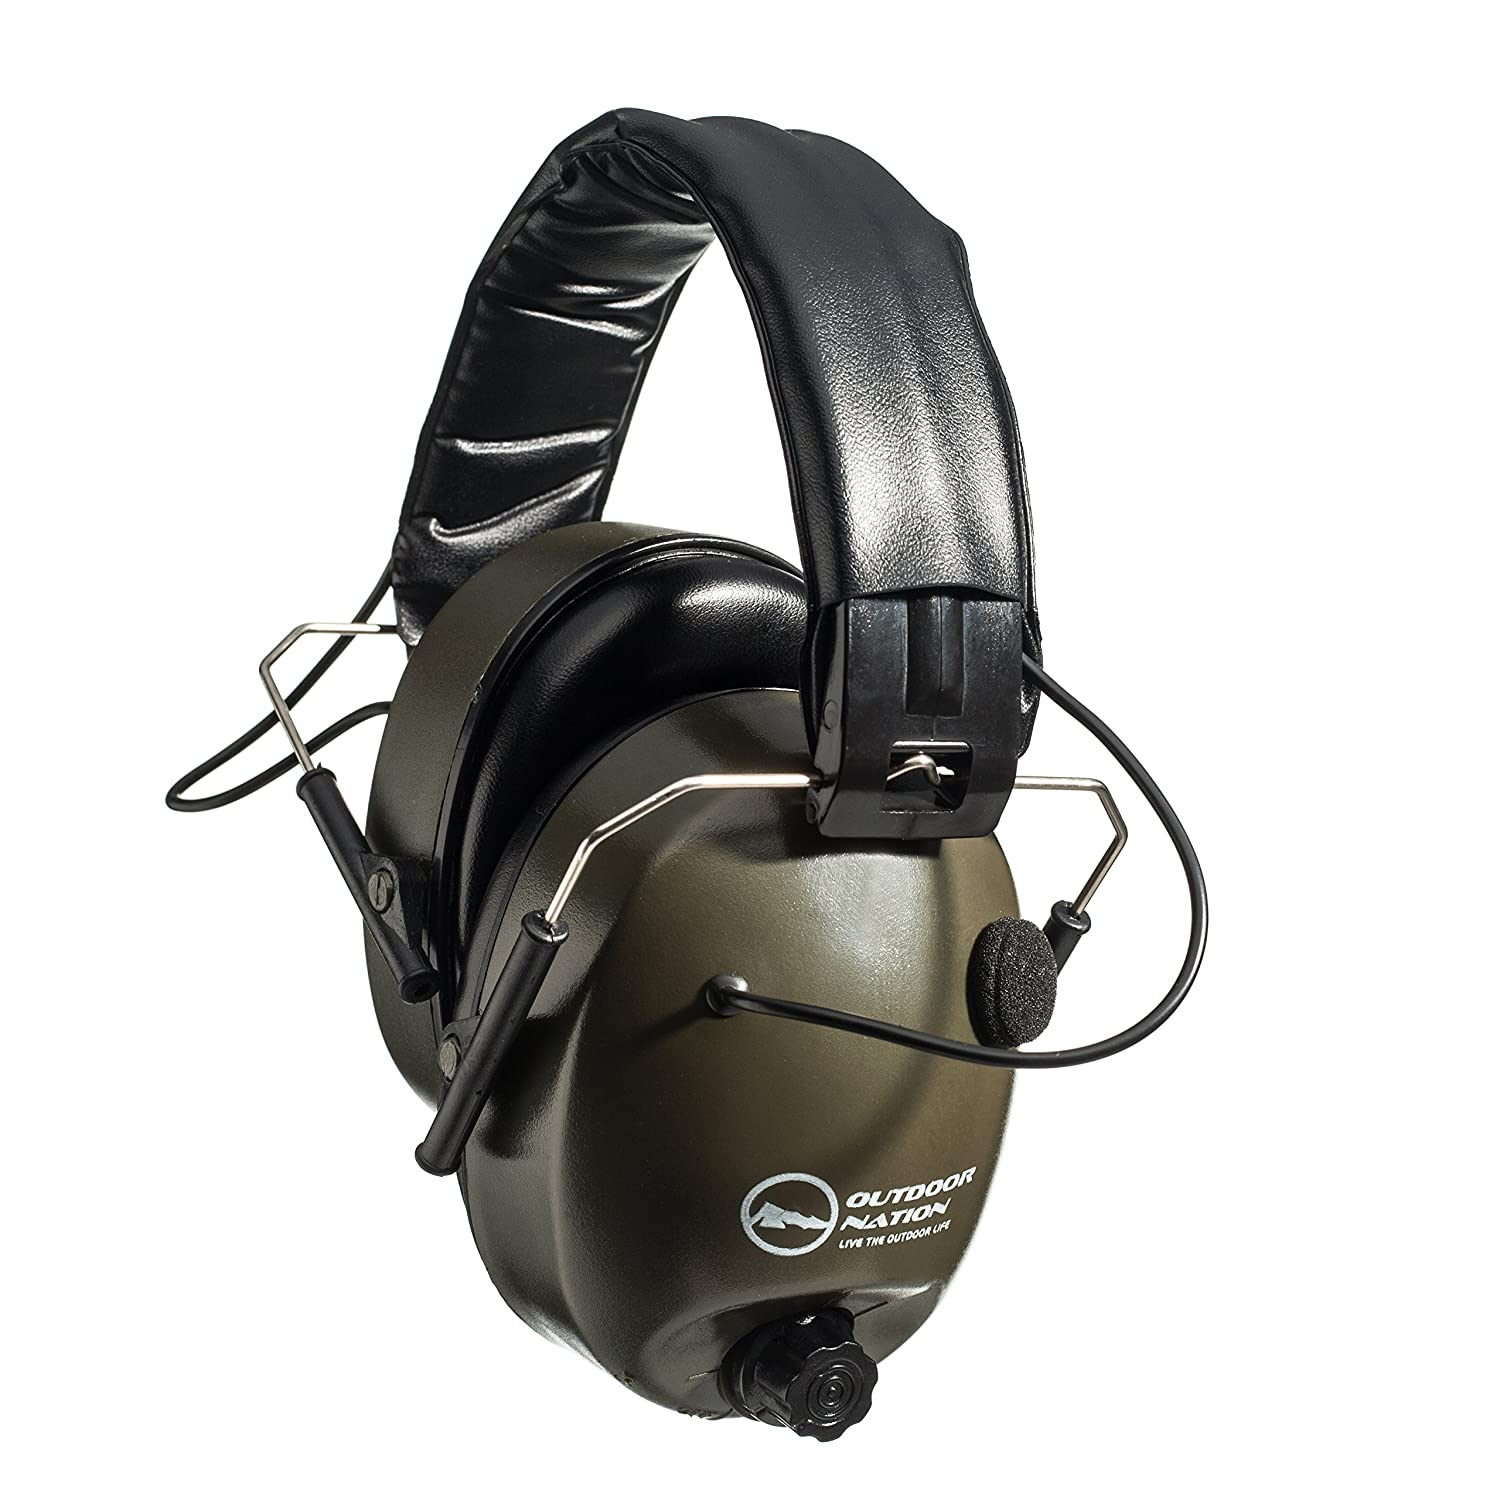 Safety Earmuffs Hearing Protection Noise Canceling Shooting Ears And Speakers Protector Green By Outdoor Nation